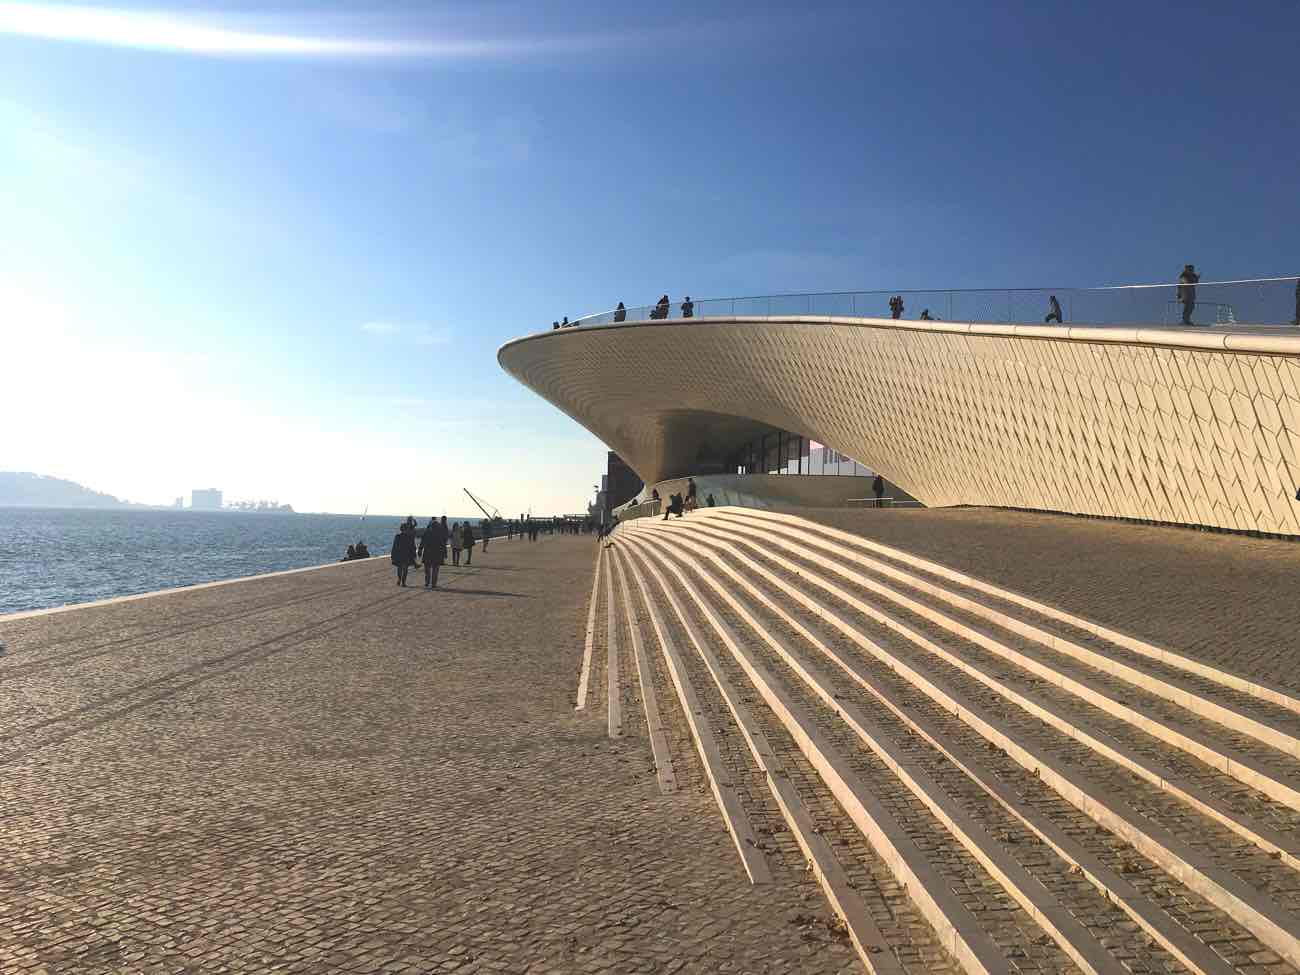 lisbon 3 day itinerary maat what to see and do lisbon